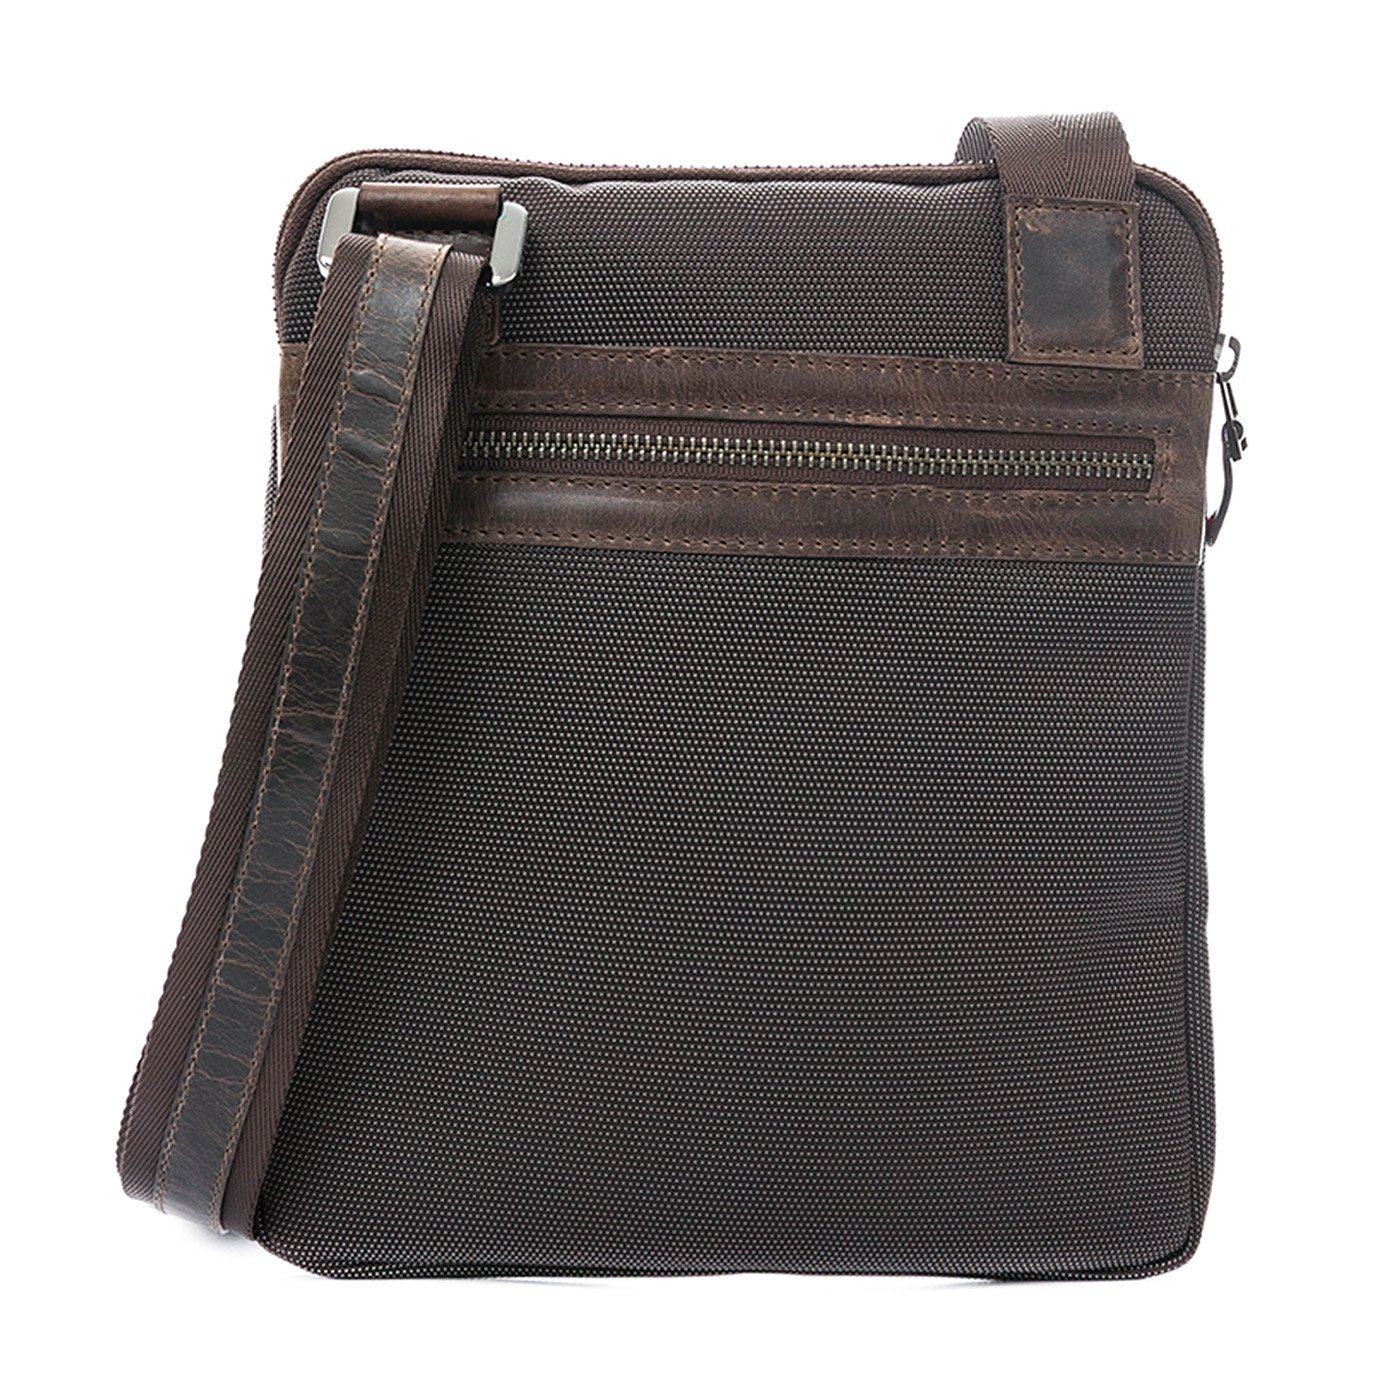 Amazon.com | VÉLEZ 21476 Men Genuine Leather Crossbody Bag | Bandolera De Cuero Coffee | Backpacks